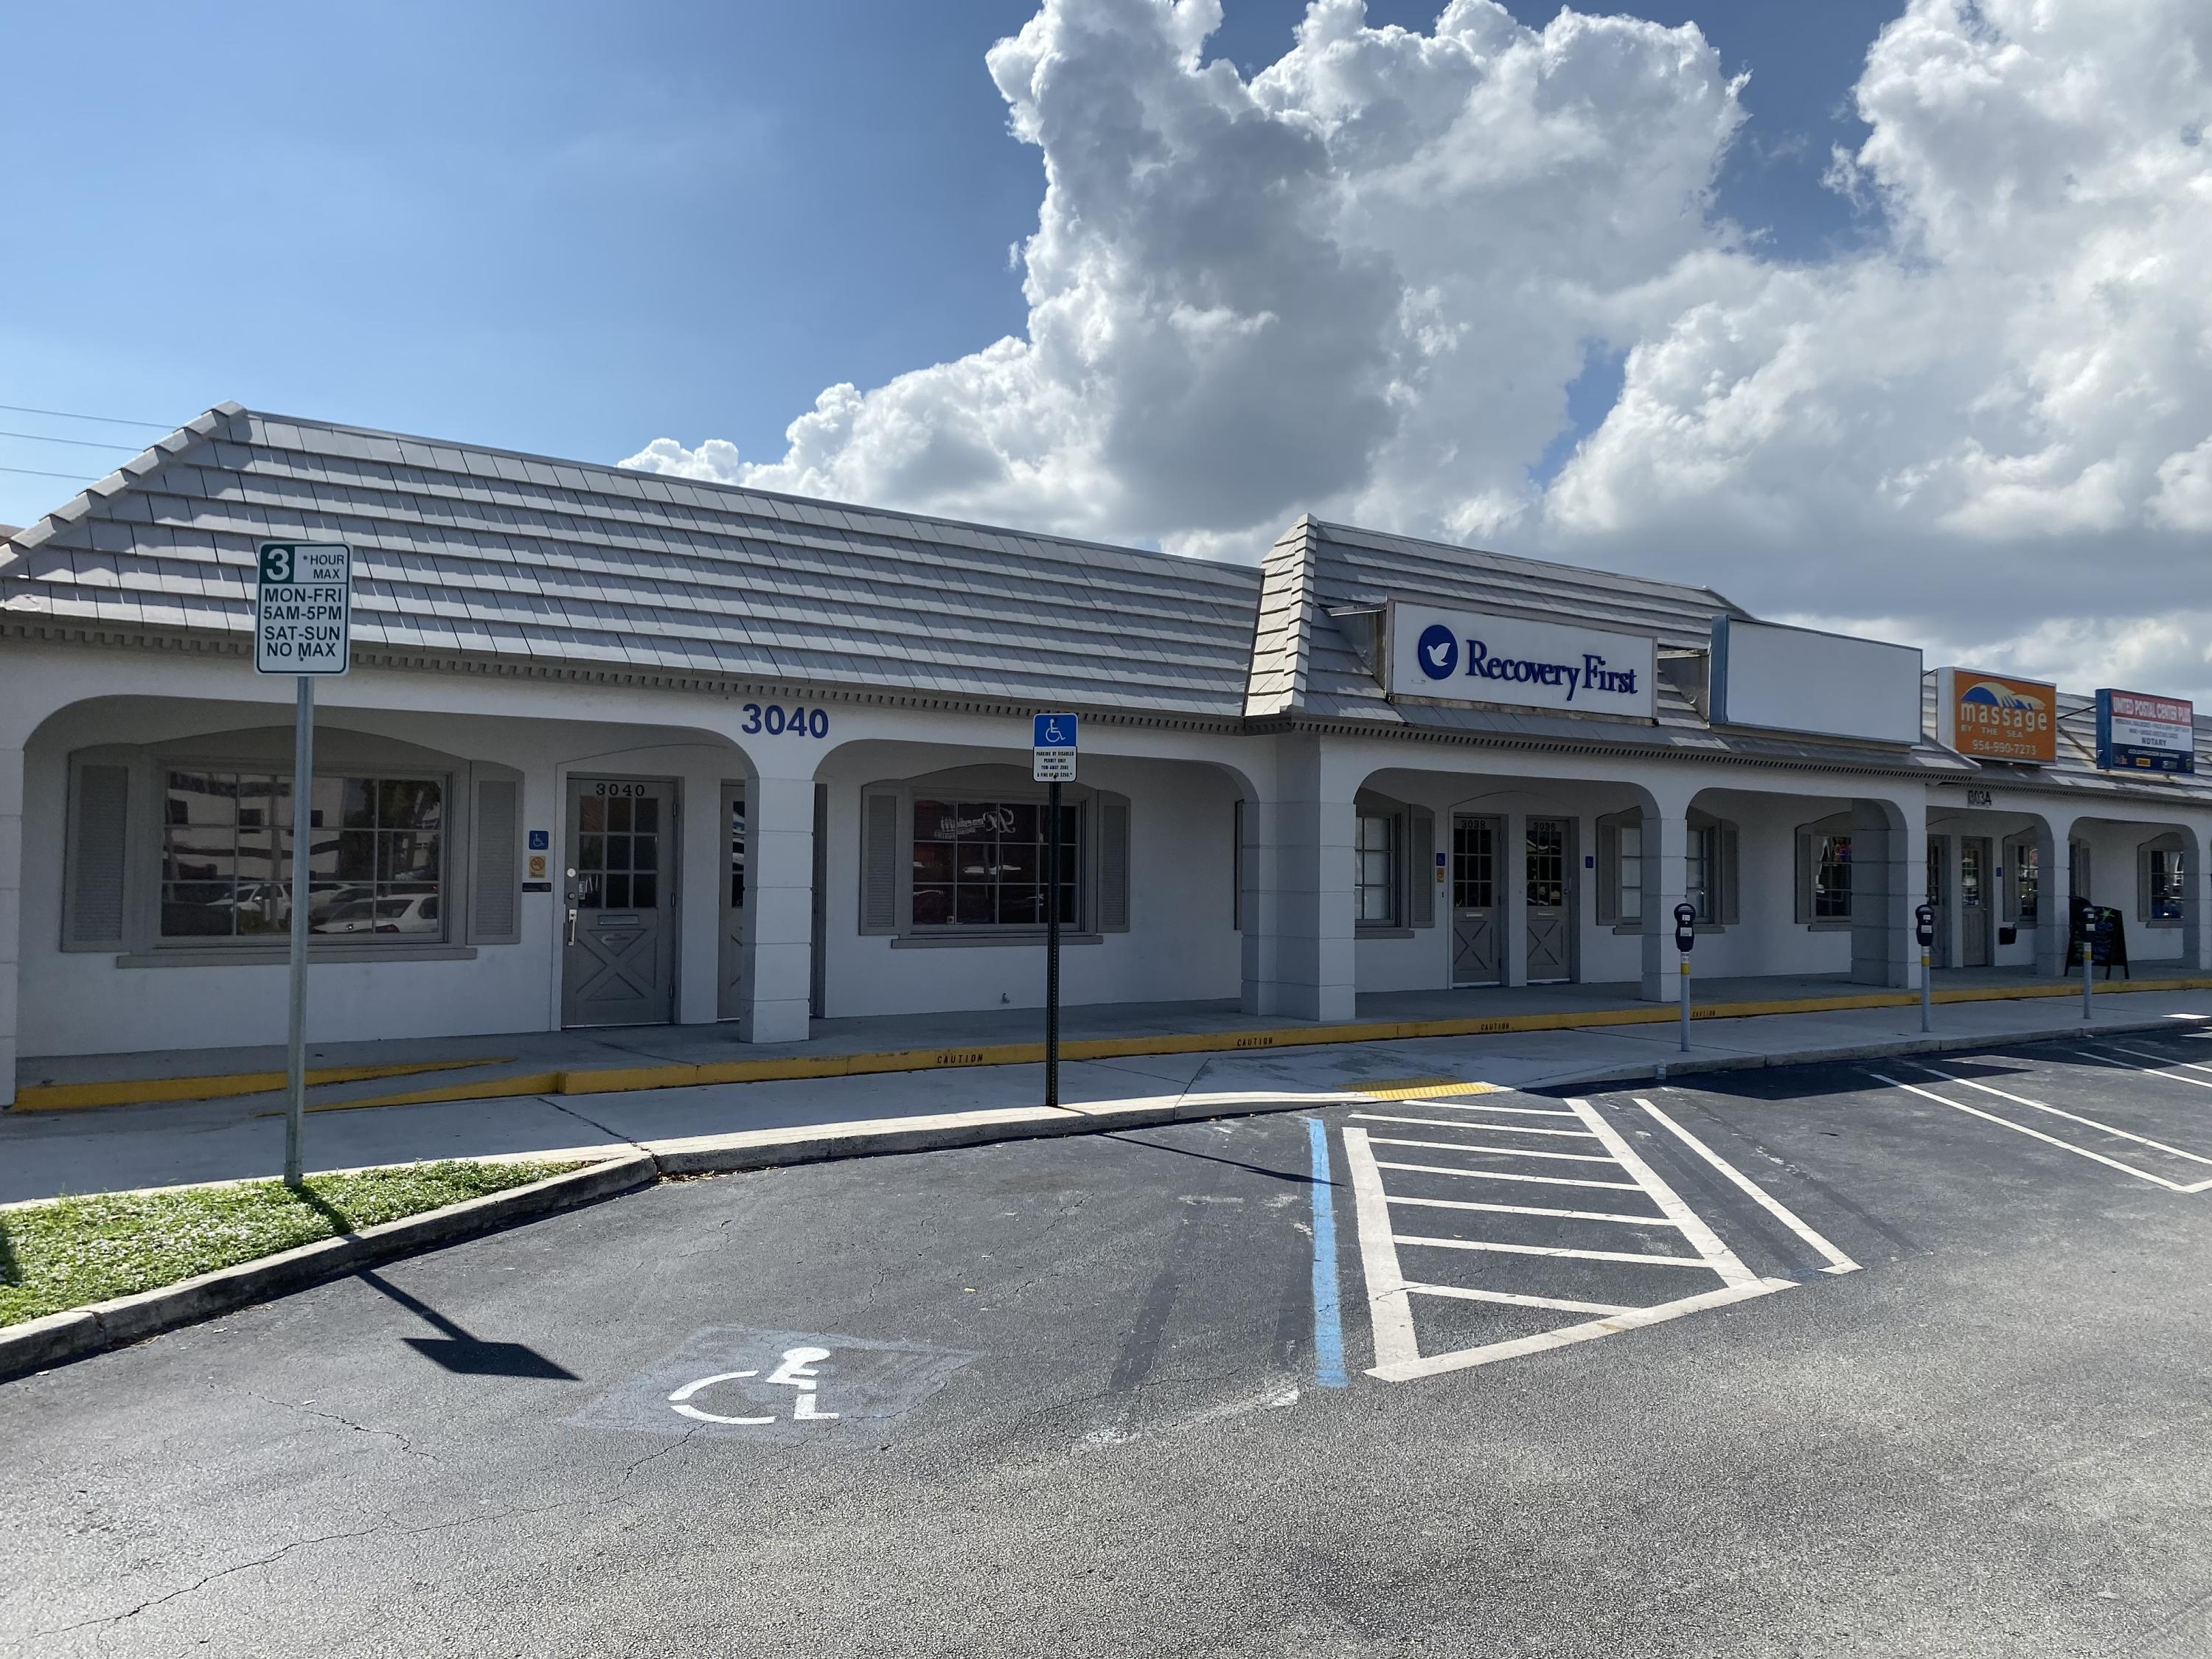 2,450 SF Nicely appointed office space on East Commercial Blvd! Space was recently renovated and was